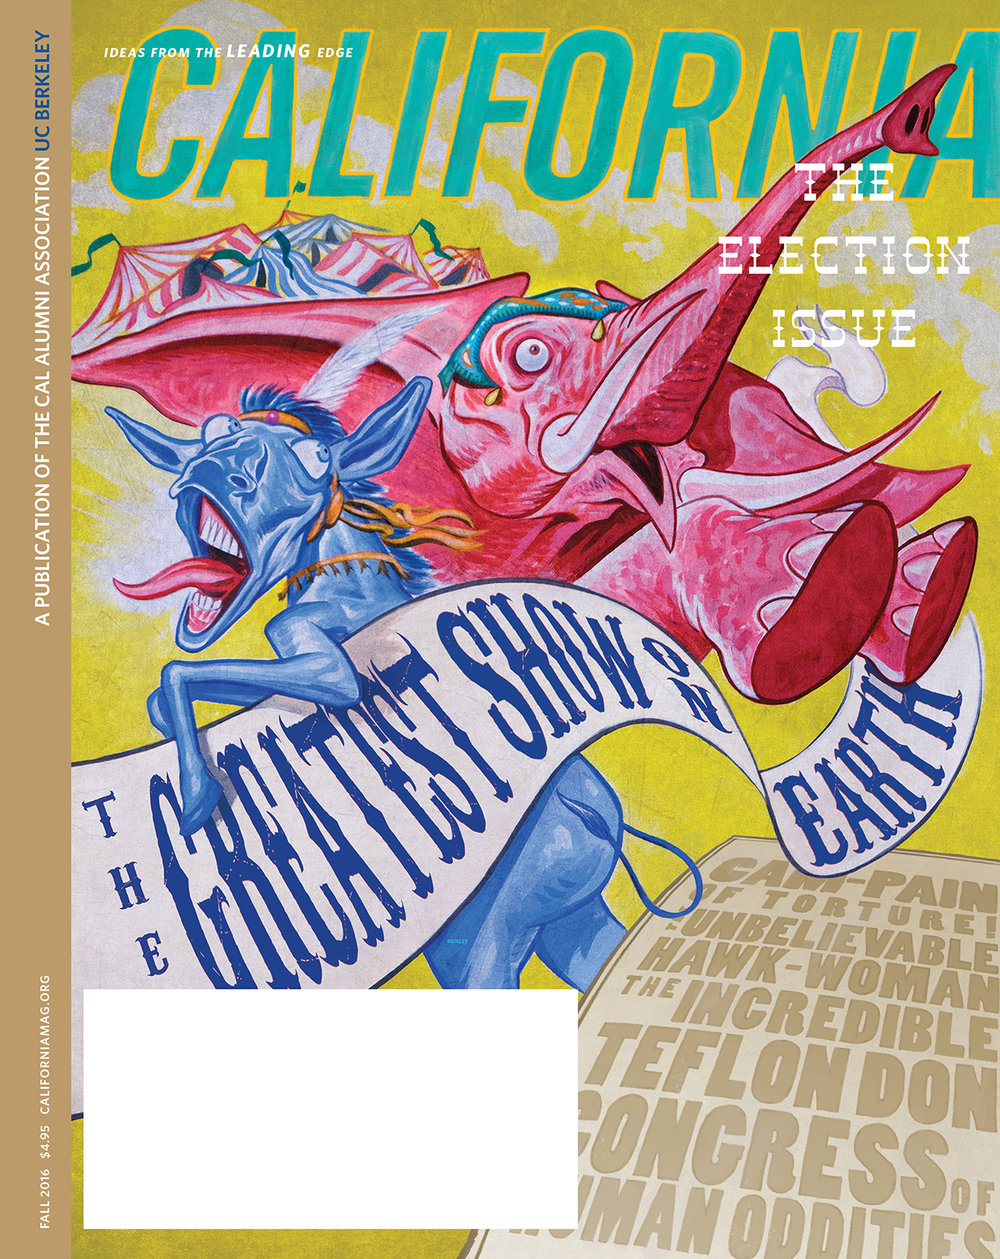 The Greatest Show On Earth  | UC Berkeley/ California Magazine Election Issue cover Fall 2016